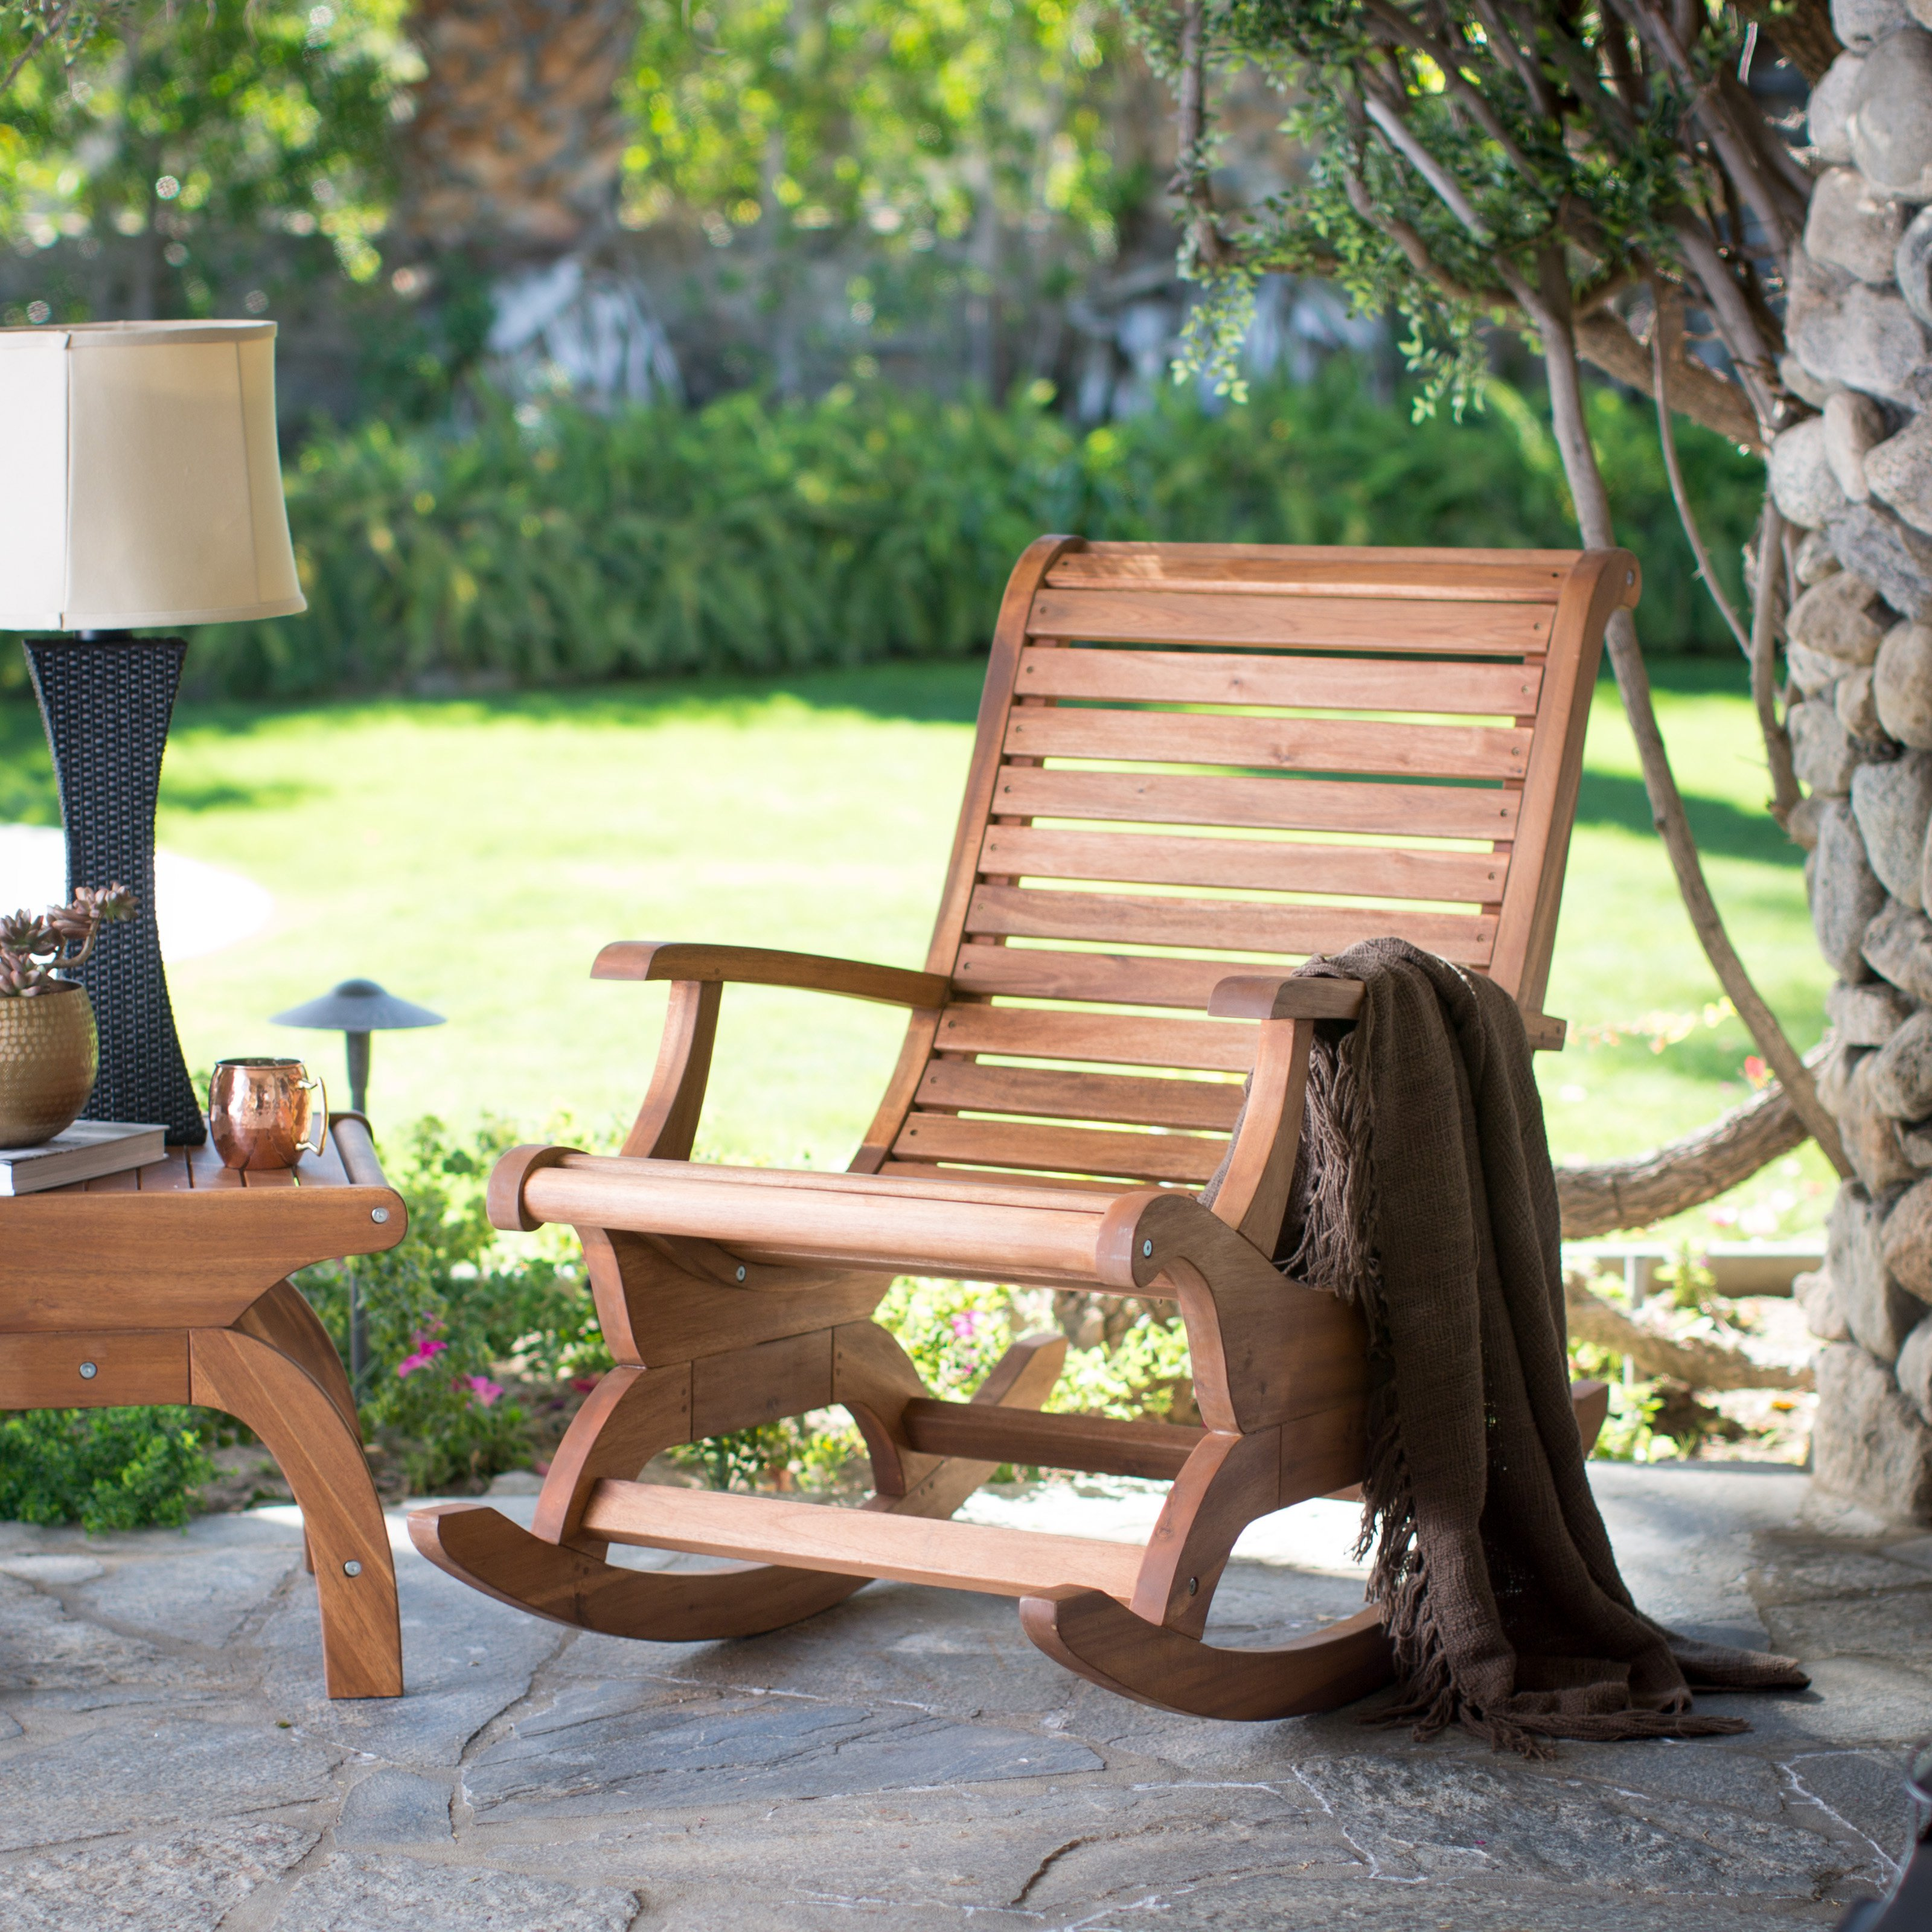 Patio Chairs for Some Relaxed Moments Outside